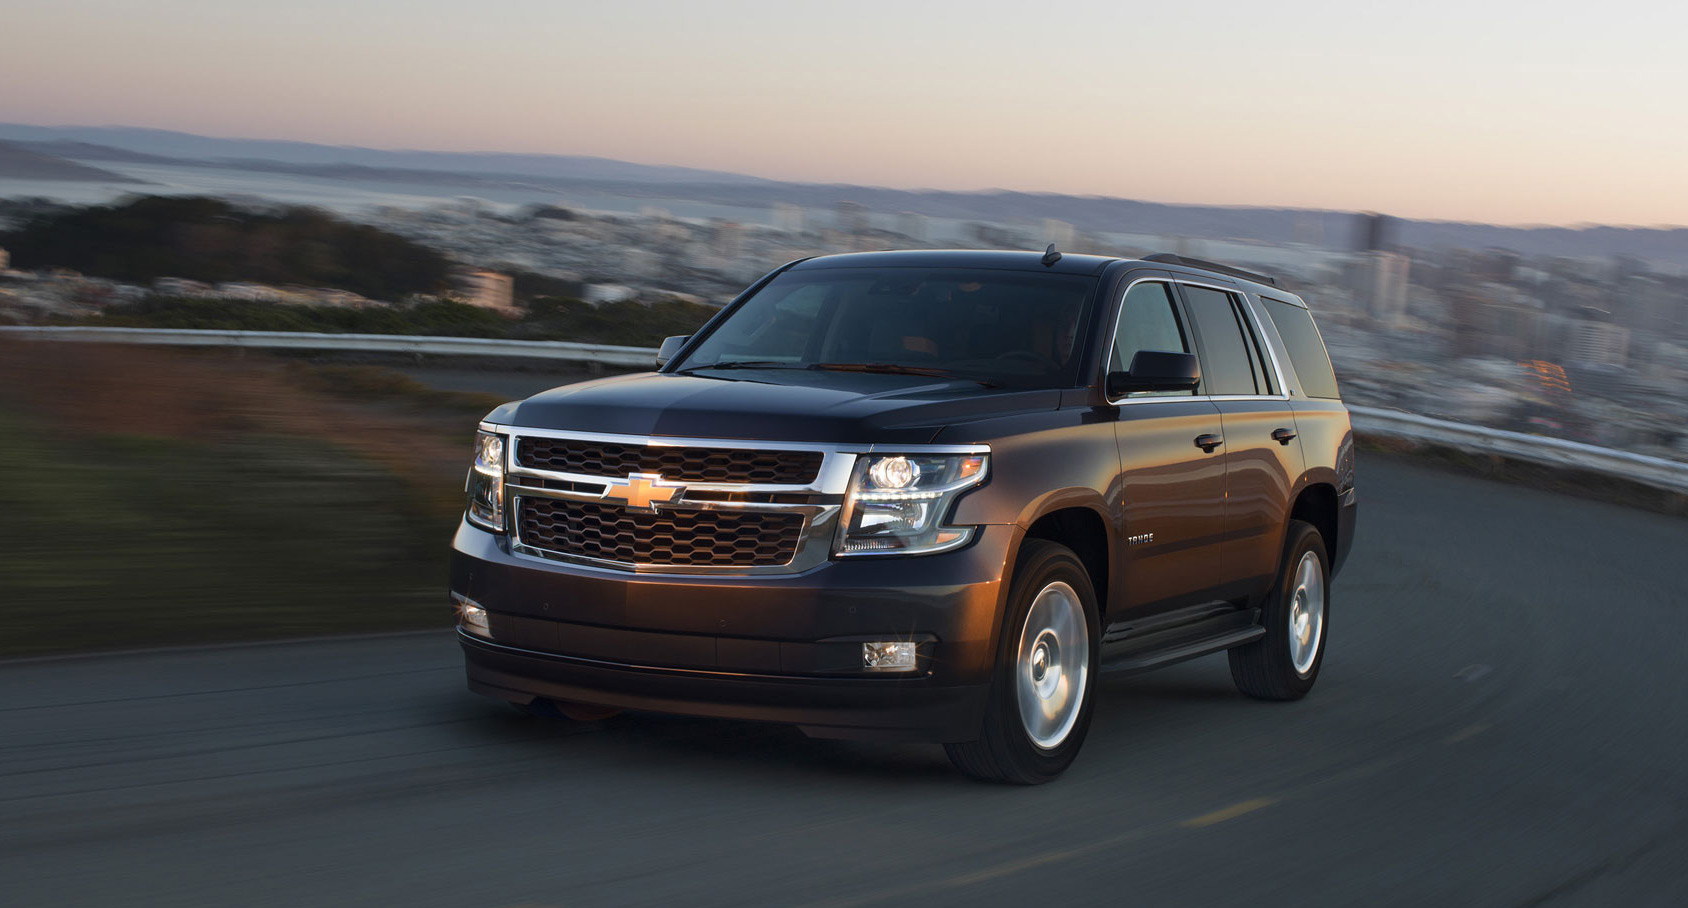 Valley Chevy - Man Buying New Chevrolet Vehicle: Tahoe